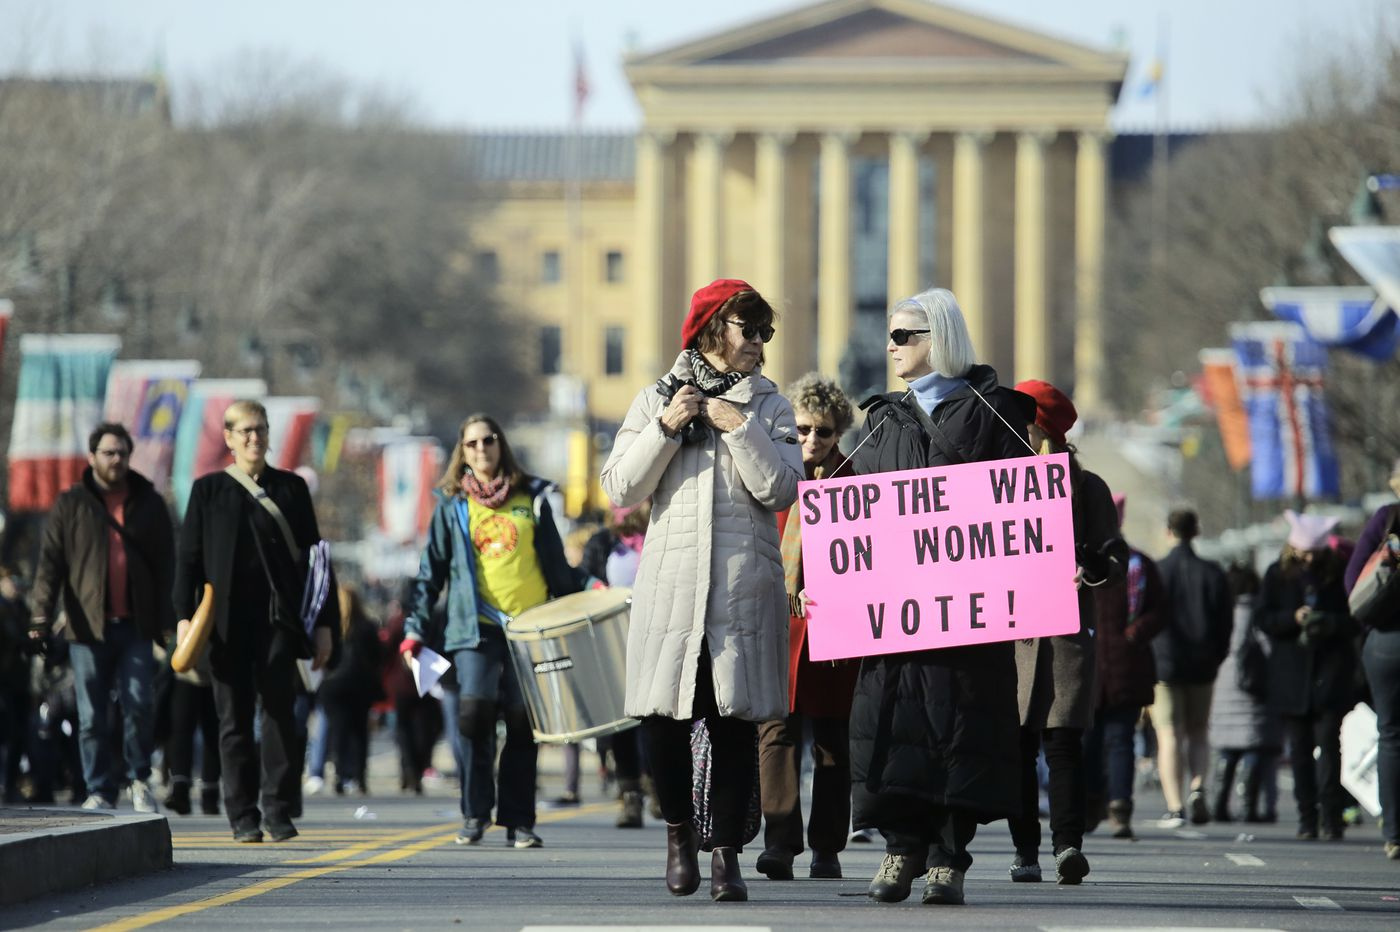 While national Women's March leaders are under fire, Philly group faces its own turmoil